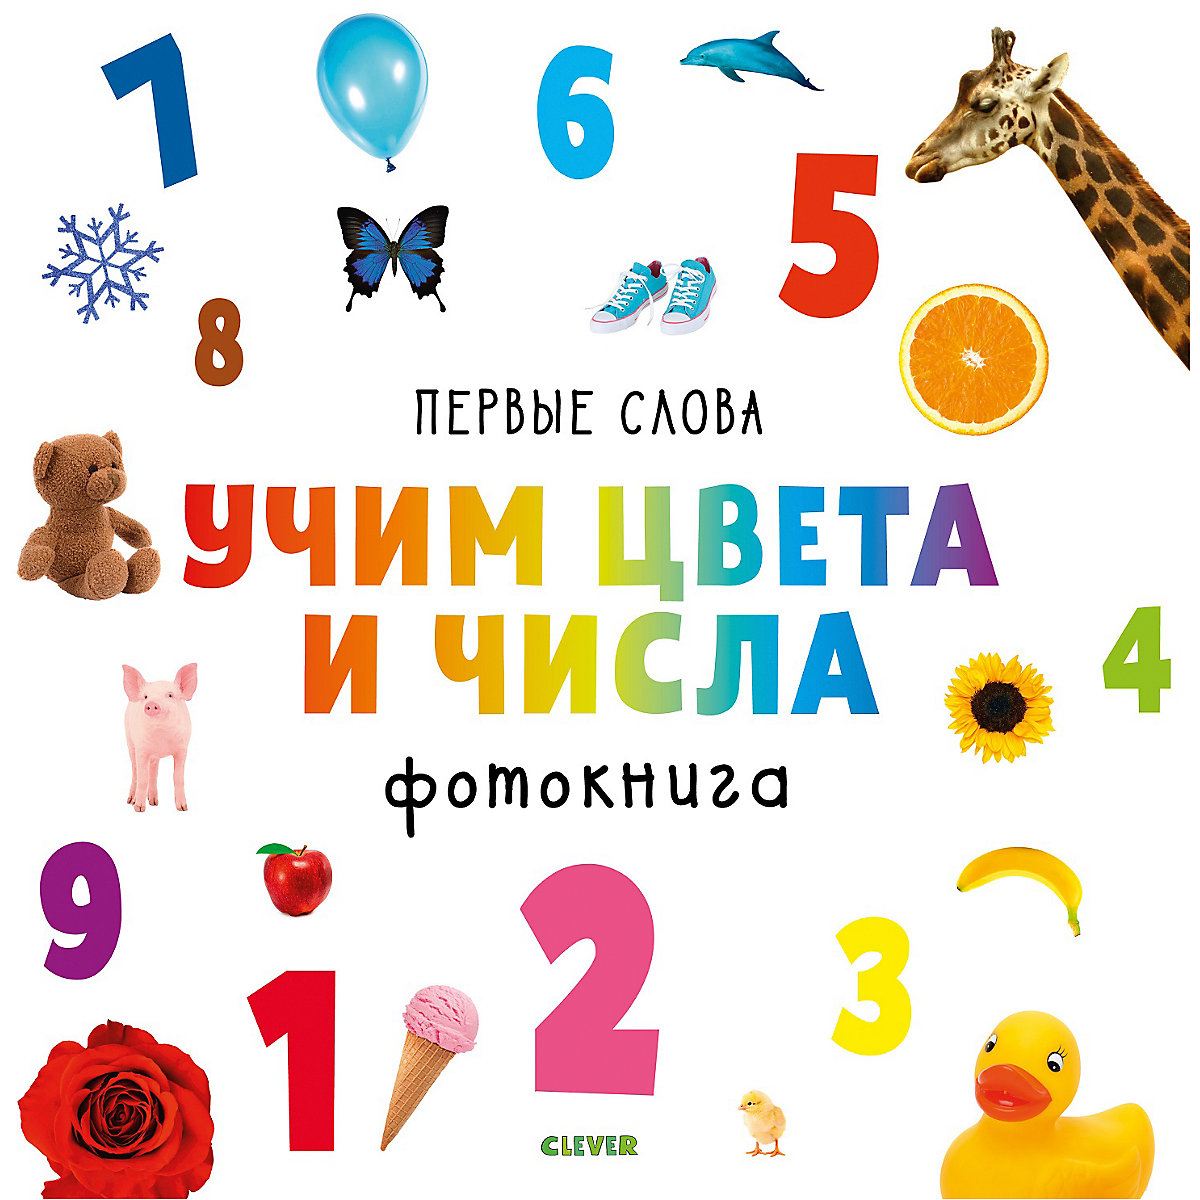 Books CLEVER 10694958 Children Education Encyclopedia Alphabet Dictionary Book For Baby MTpromo